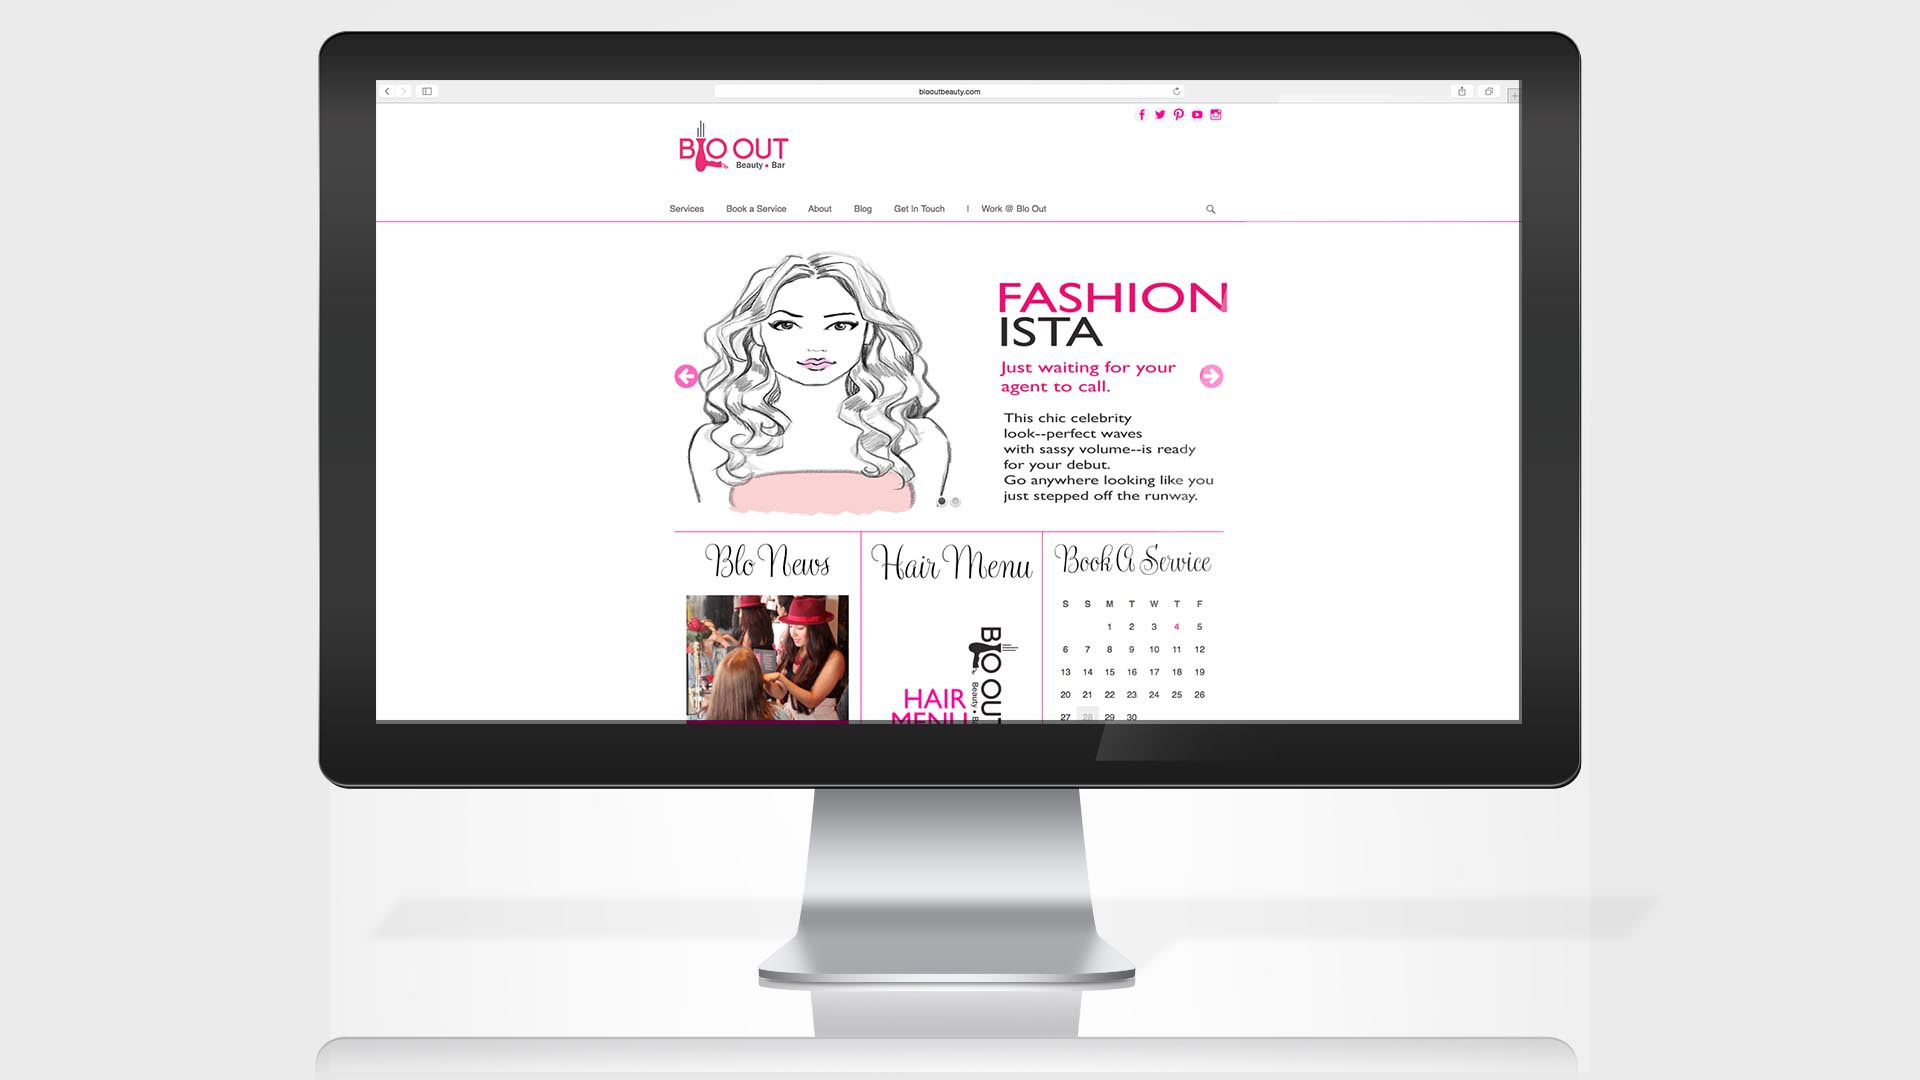 blo-out-beauty-bar-website-home-page